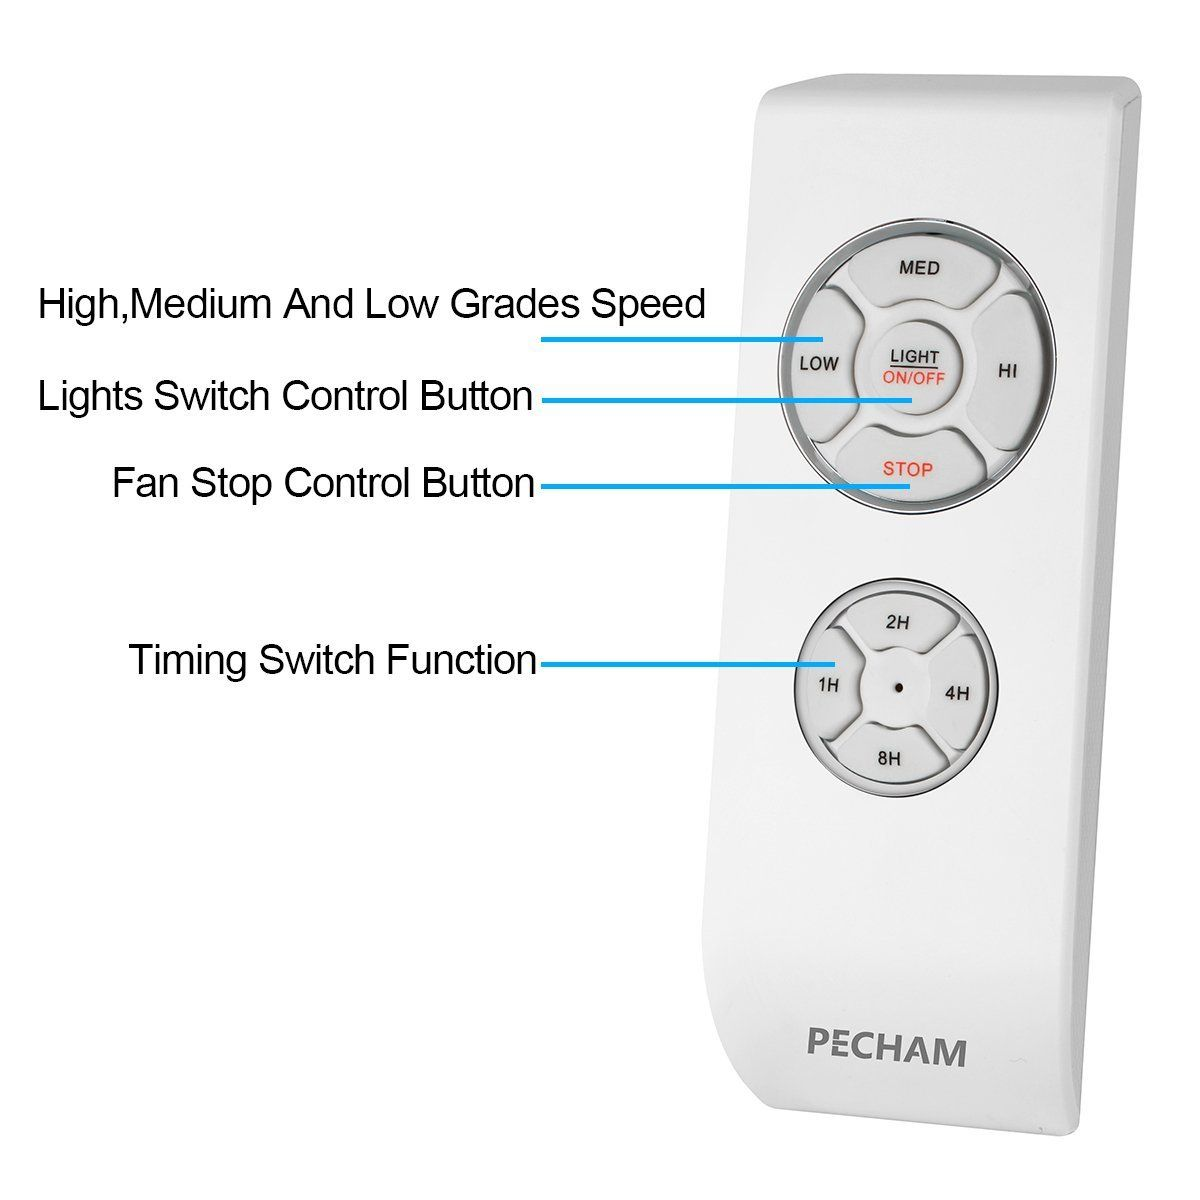 light item lights remote pecham universal battery ceilings lamp ceiling controller and fan control kit wireless